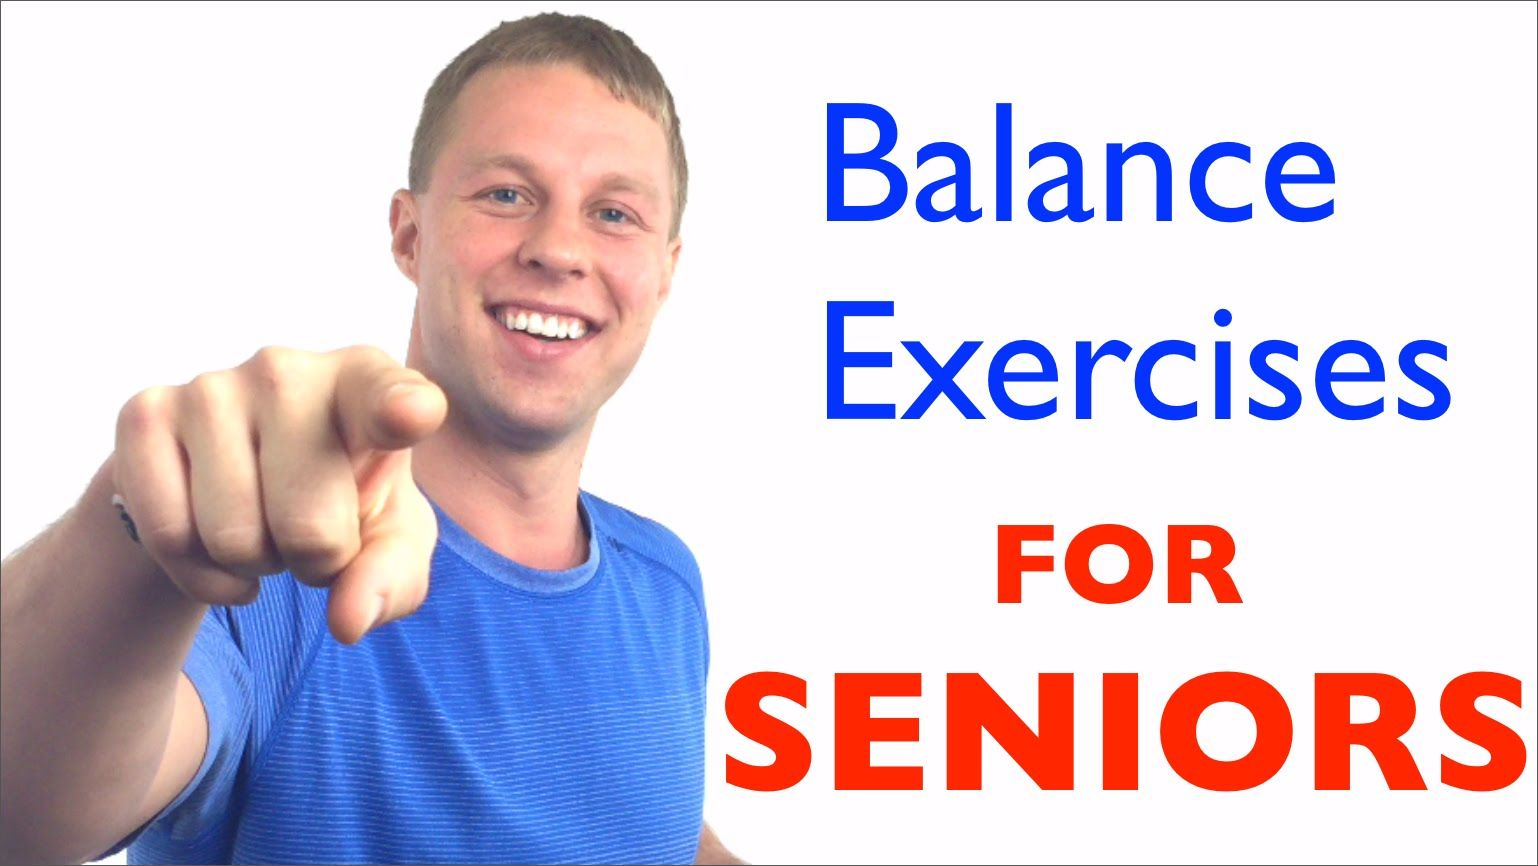 Balance Exercises for Seniors - Fall Prevention - Balance Exercises for ...